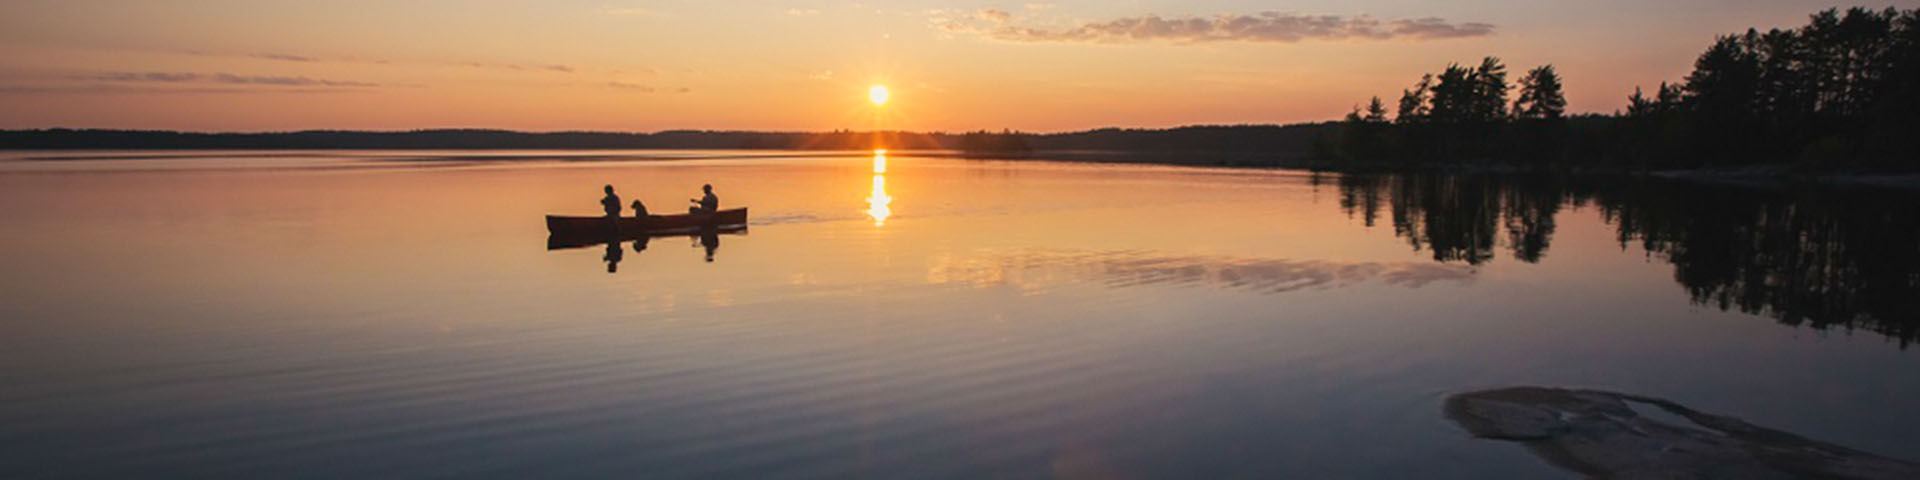 1 Day Paddle, Eat, Sleep Package by Voyageur Wilderness Programme - Image 1